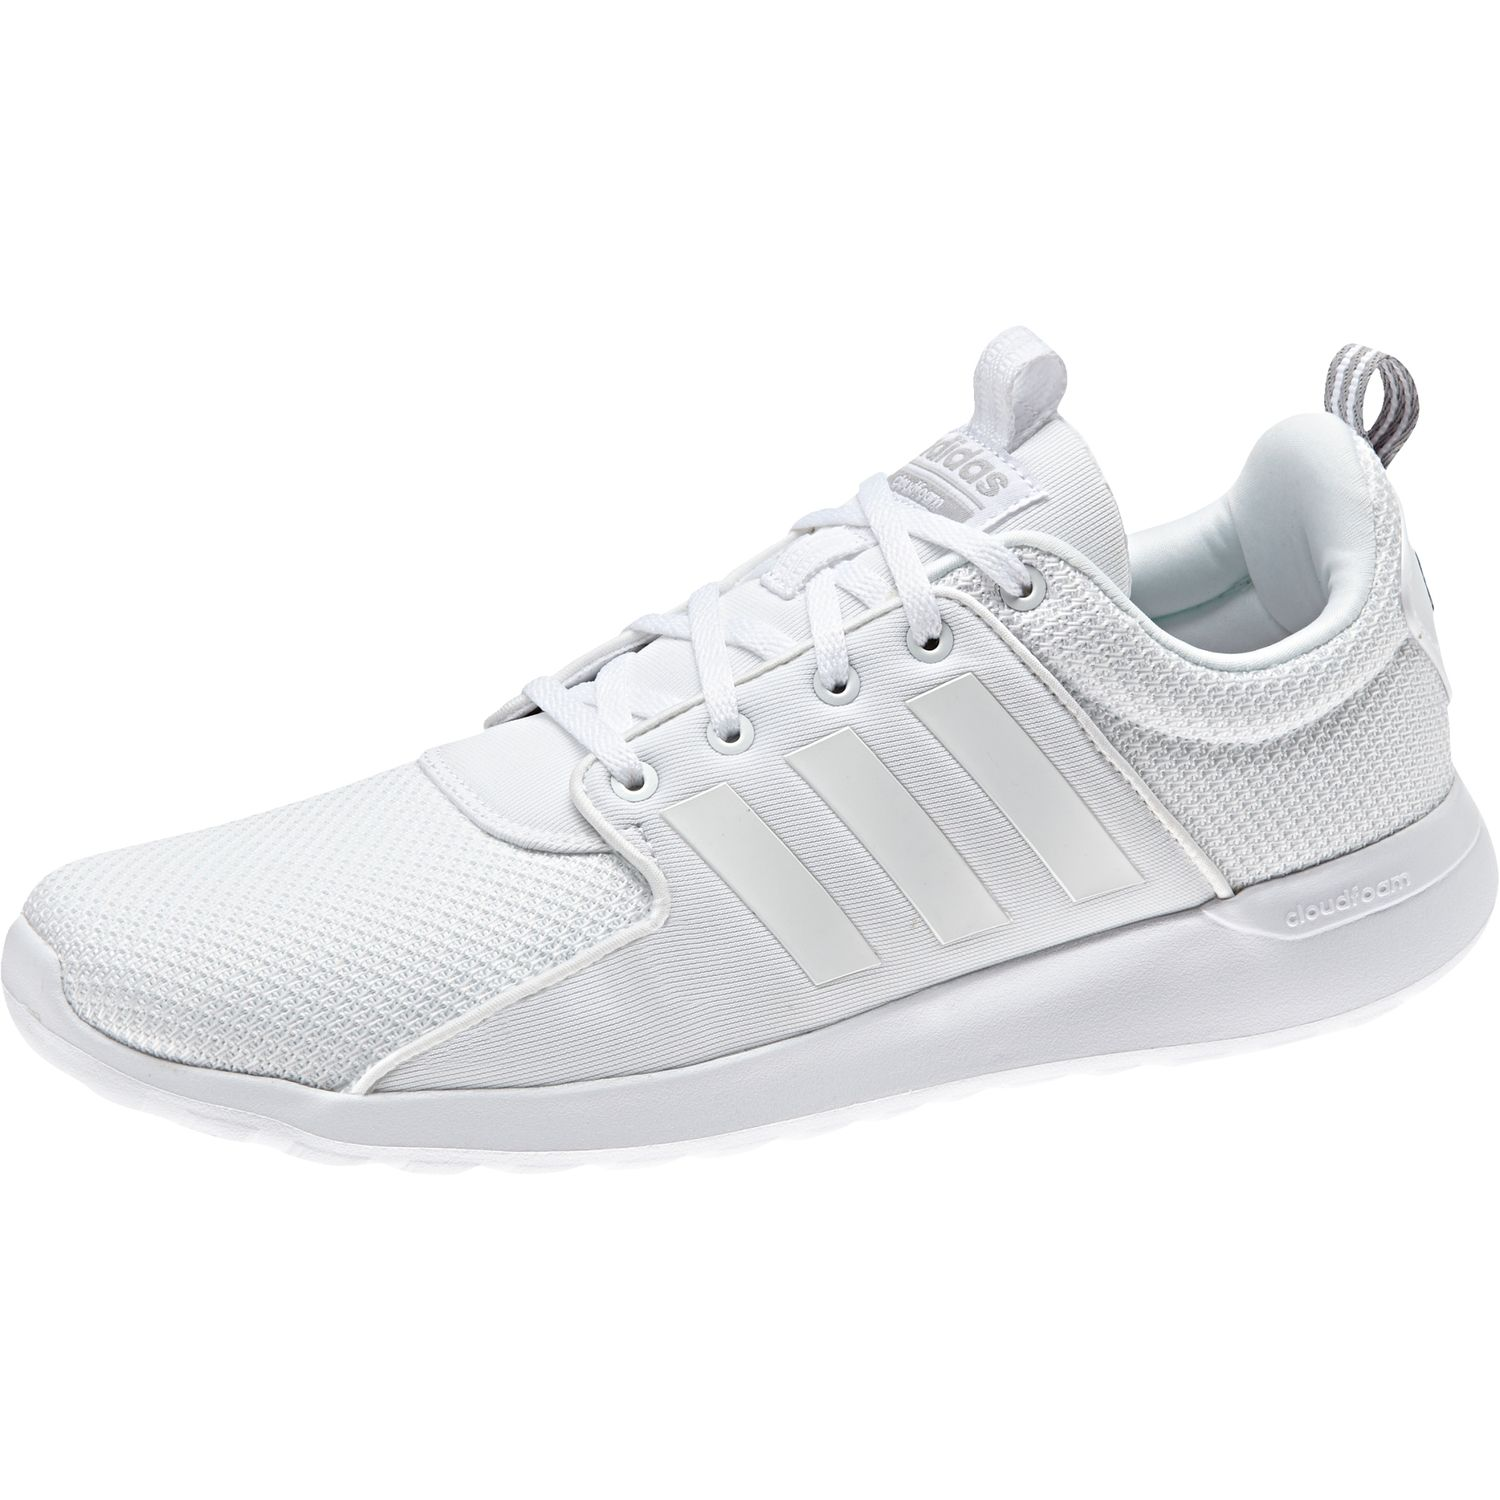 63669f984d adidas NEO men s sneaker shoes running shoes CLOUDFOAM CF Lite racer AW4262  white